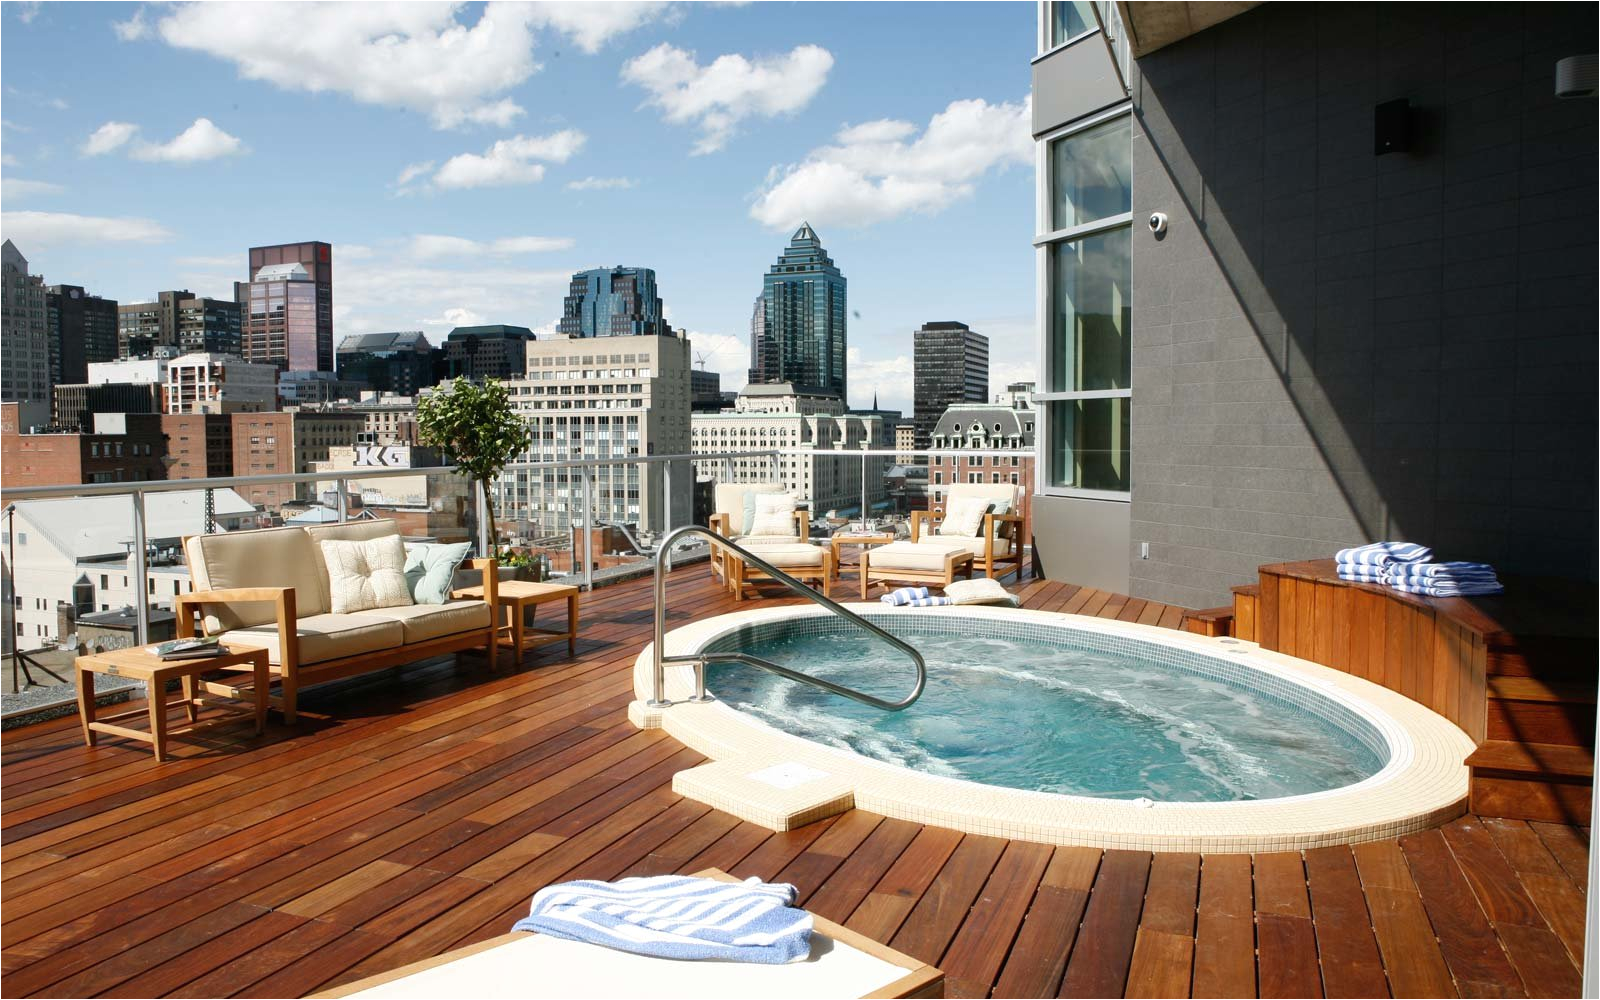 Jacuzzi Bathtub toronto 25 Rooftop Pools to Dream About while You Sit In the